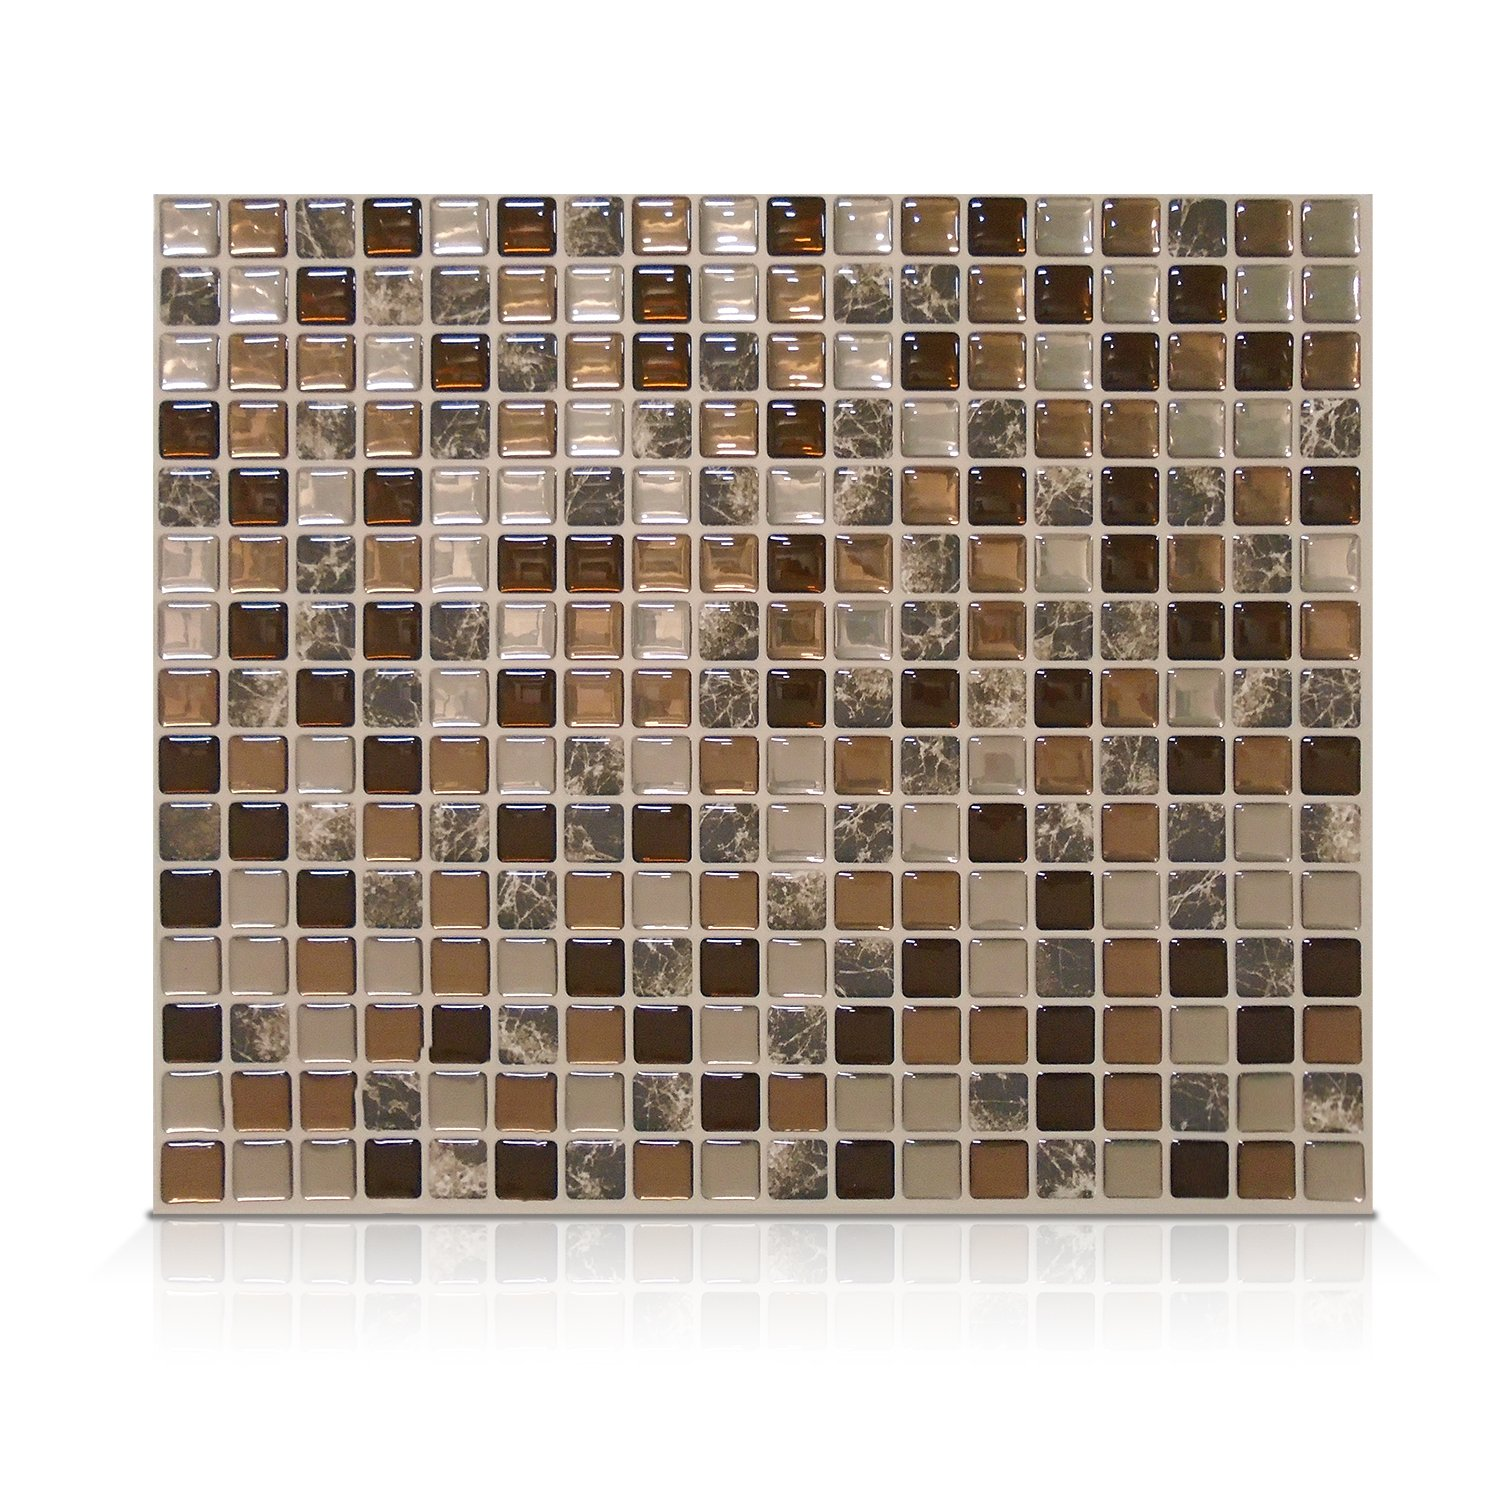 Smart Tiles Peel and Stick Backsplash and Wall Tile Minimo Roca (Pack of 4) by Smart Tiles